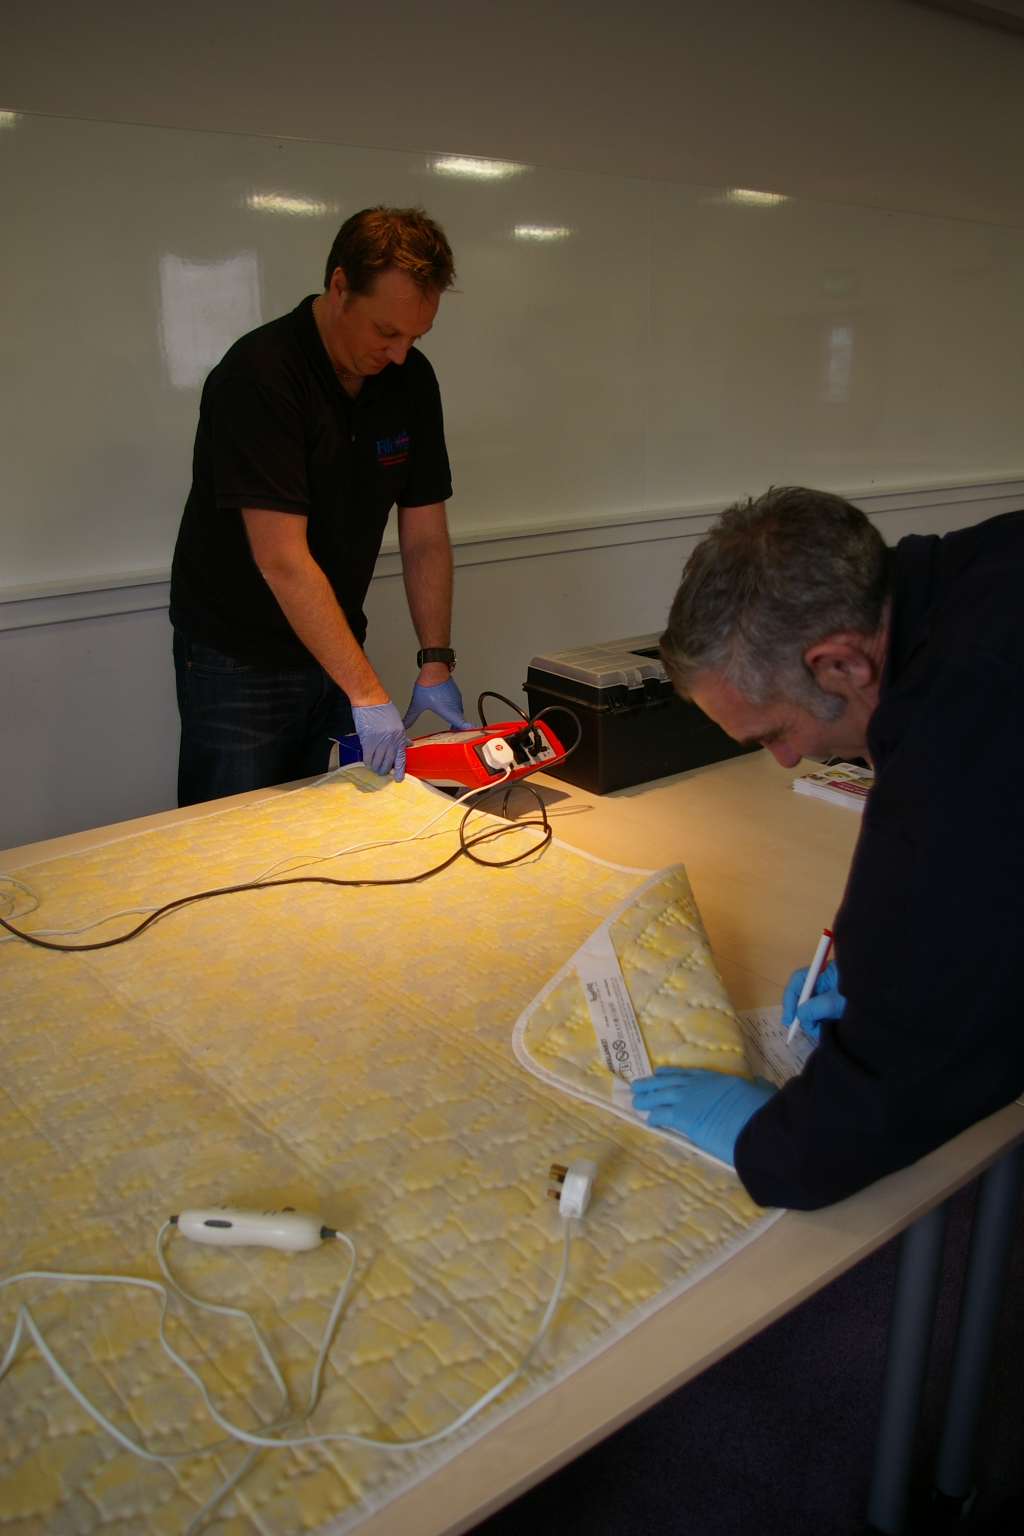 Make sure your electric blanket is safe by coming to our events